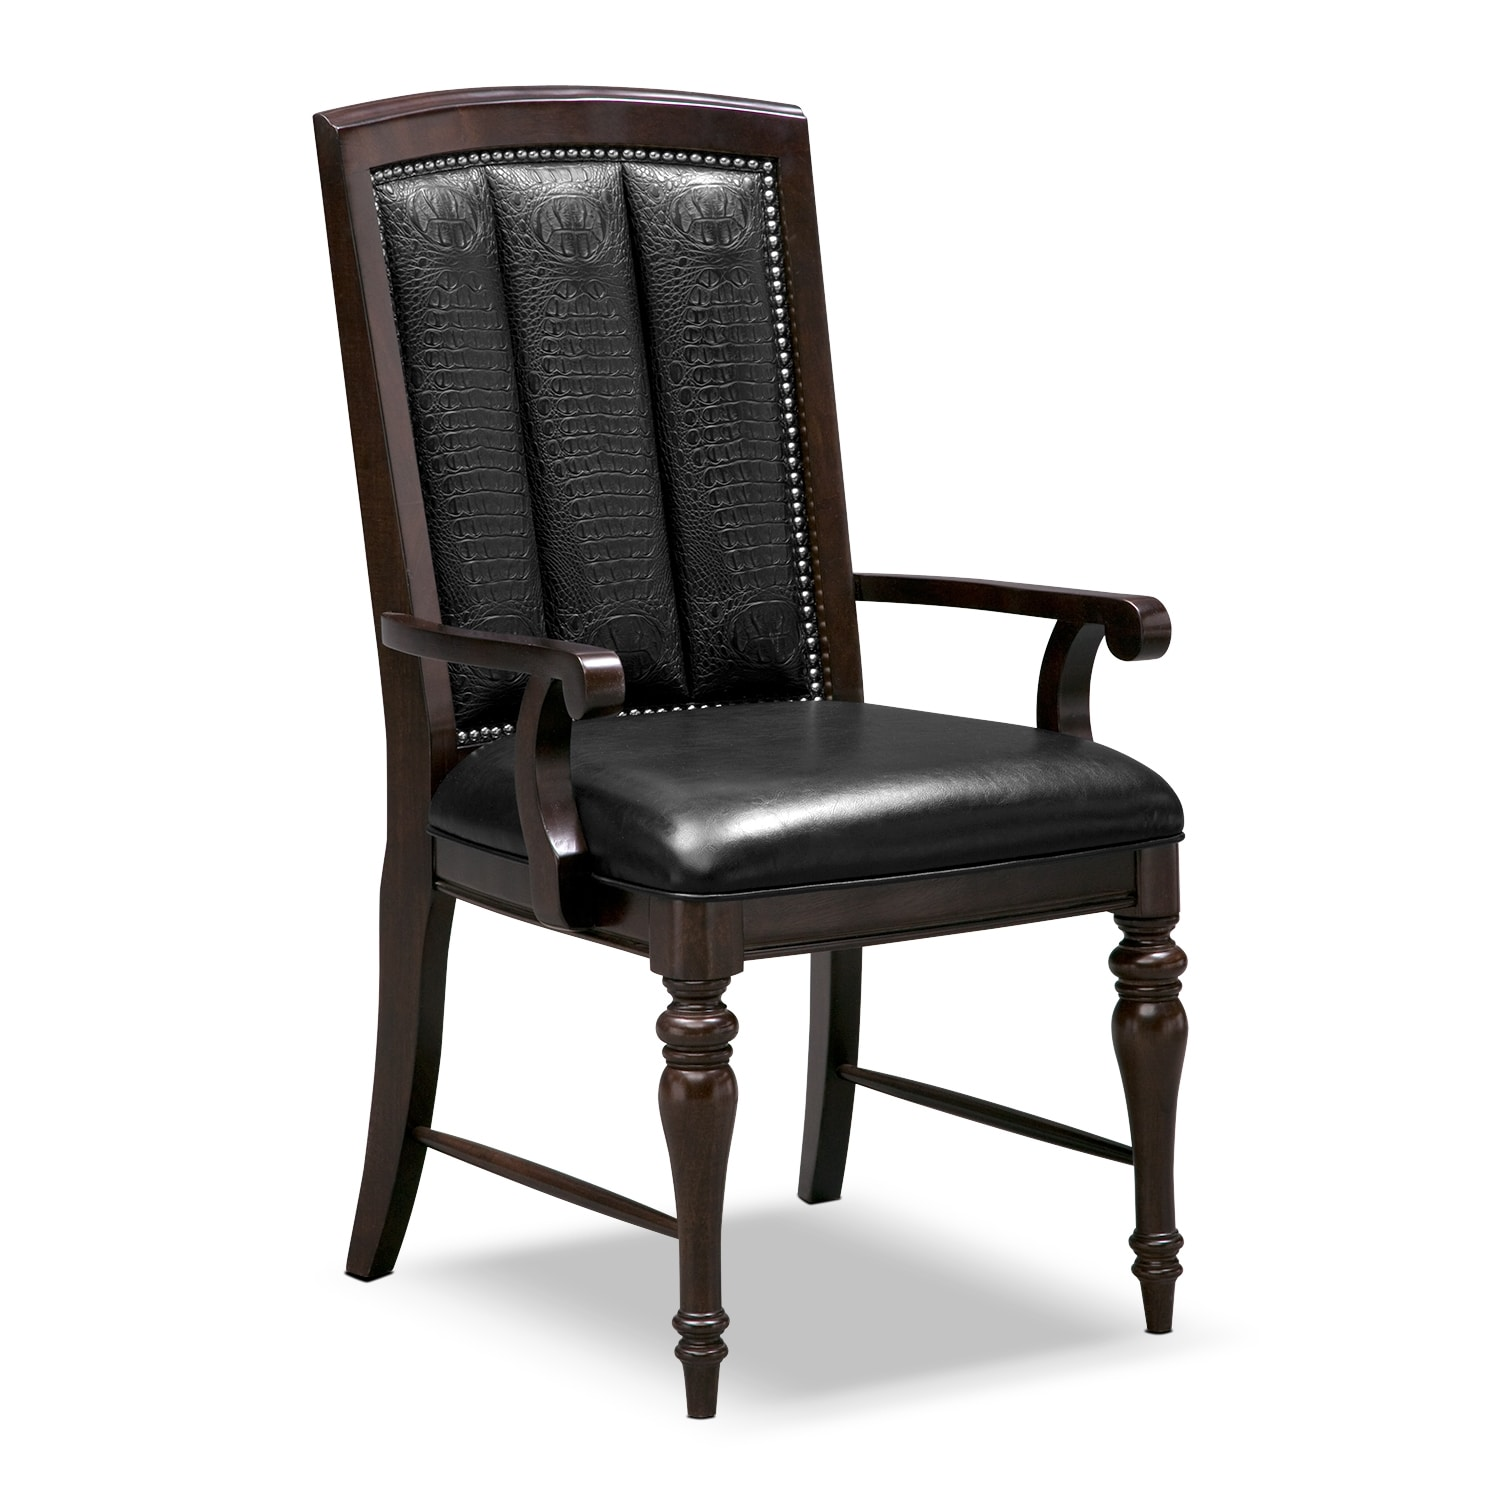 Esquire Arm Chair - Cherry